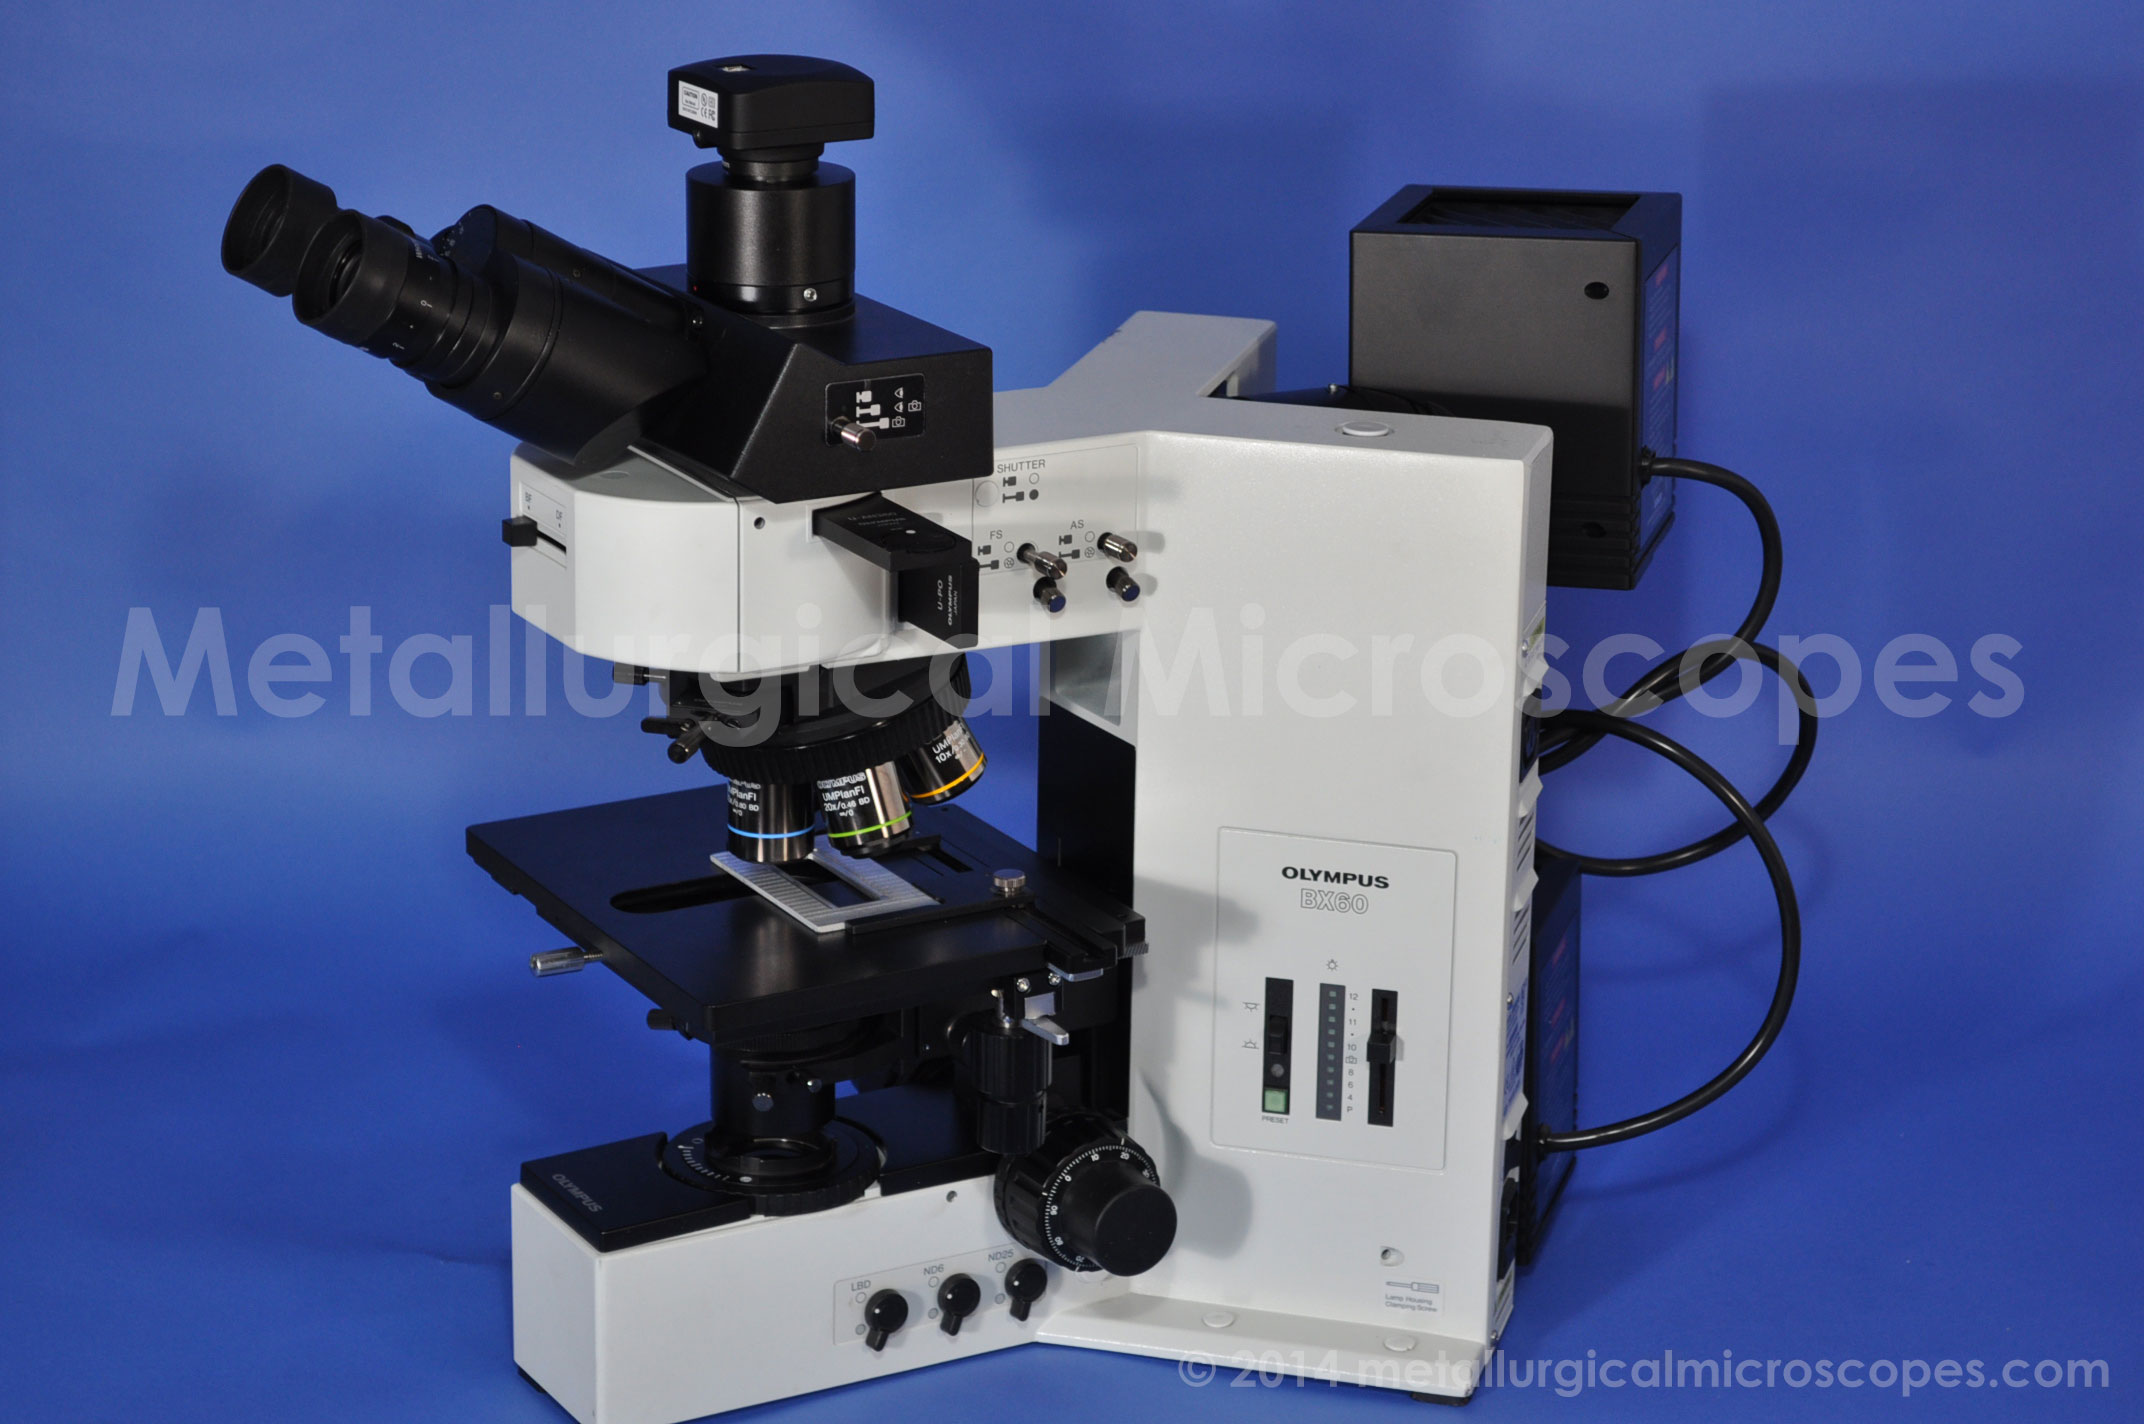 olympus bx60 darkfield dic metallurgical microscope rh metallurgicalmicroscopes com Olympus Microscopes Condenser Diagram Compound Microscope Olympus